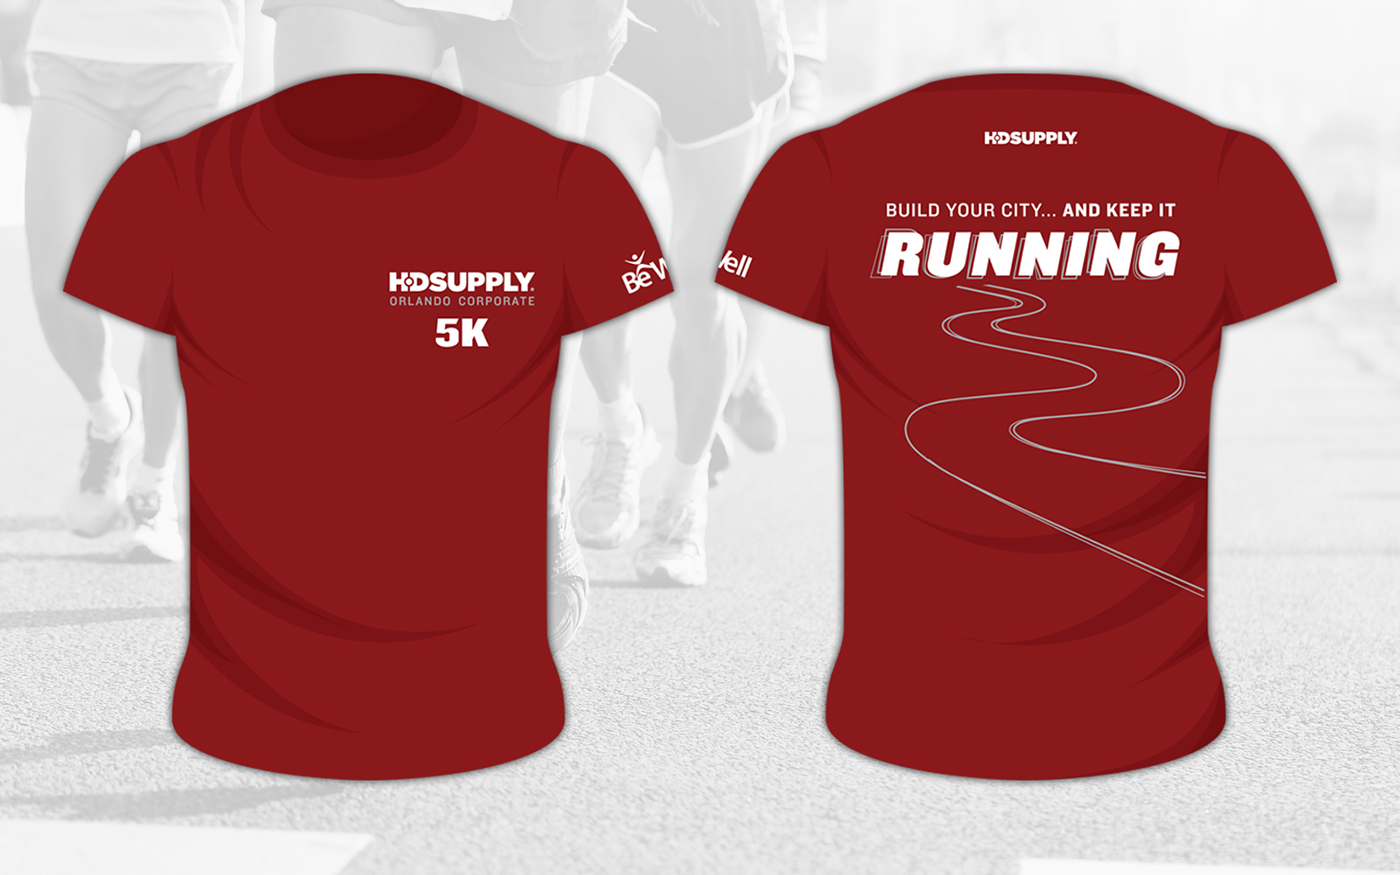 Orlando Corporate 5k Race T Shirt Designs On Behance